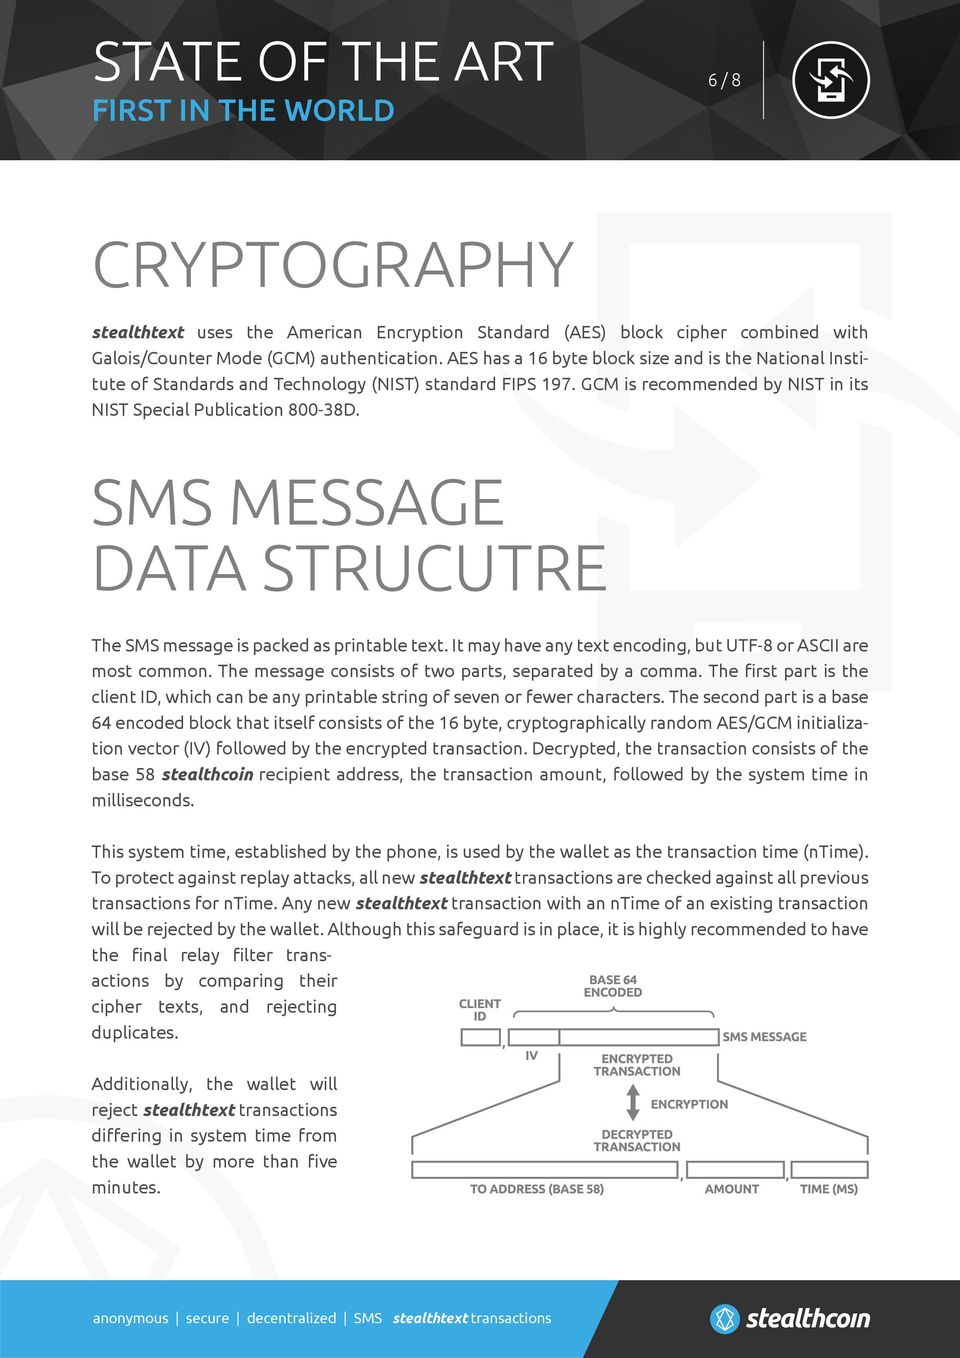 SMS MESSAGE DATA STRUCUTRE The SMS message is packed as printable text. It may have any text encoding, but UTF-8 or ASCII are most common. The message consists of two parts, separated by a comma.